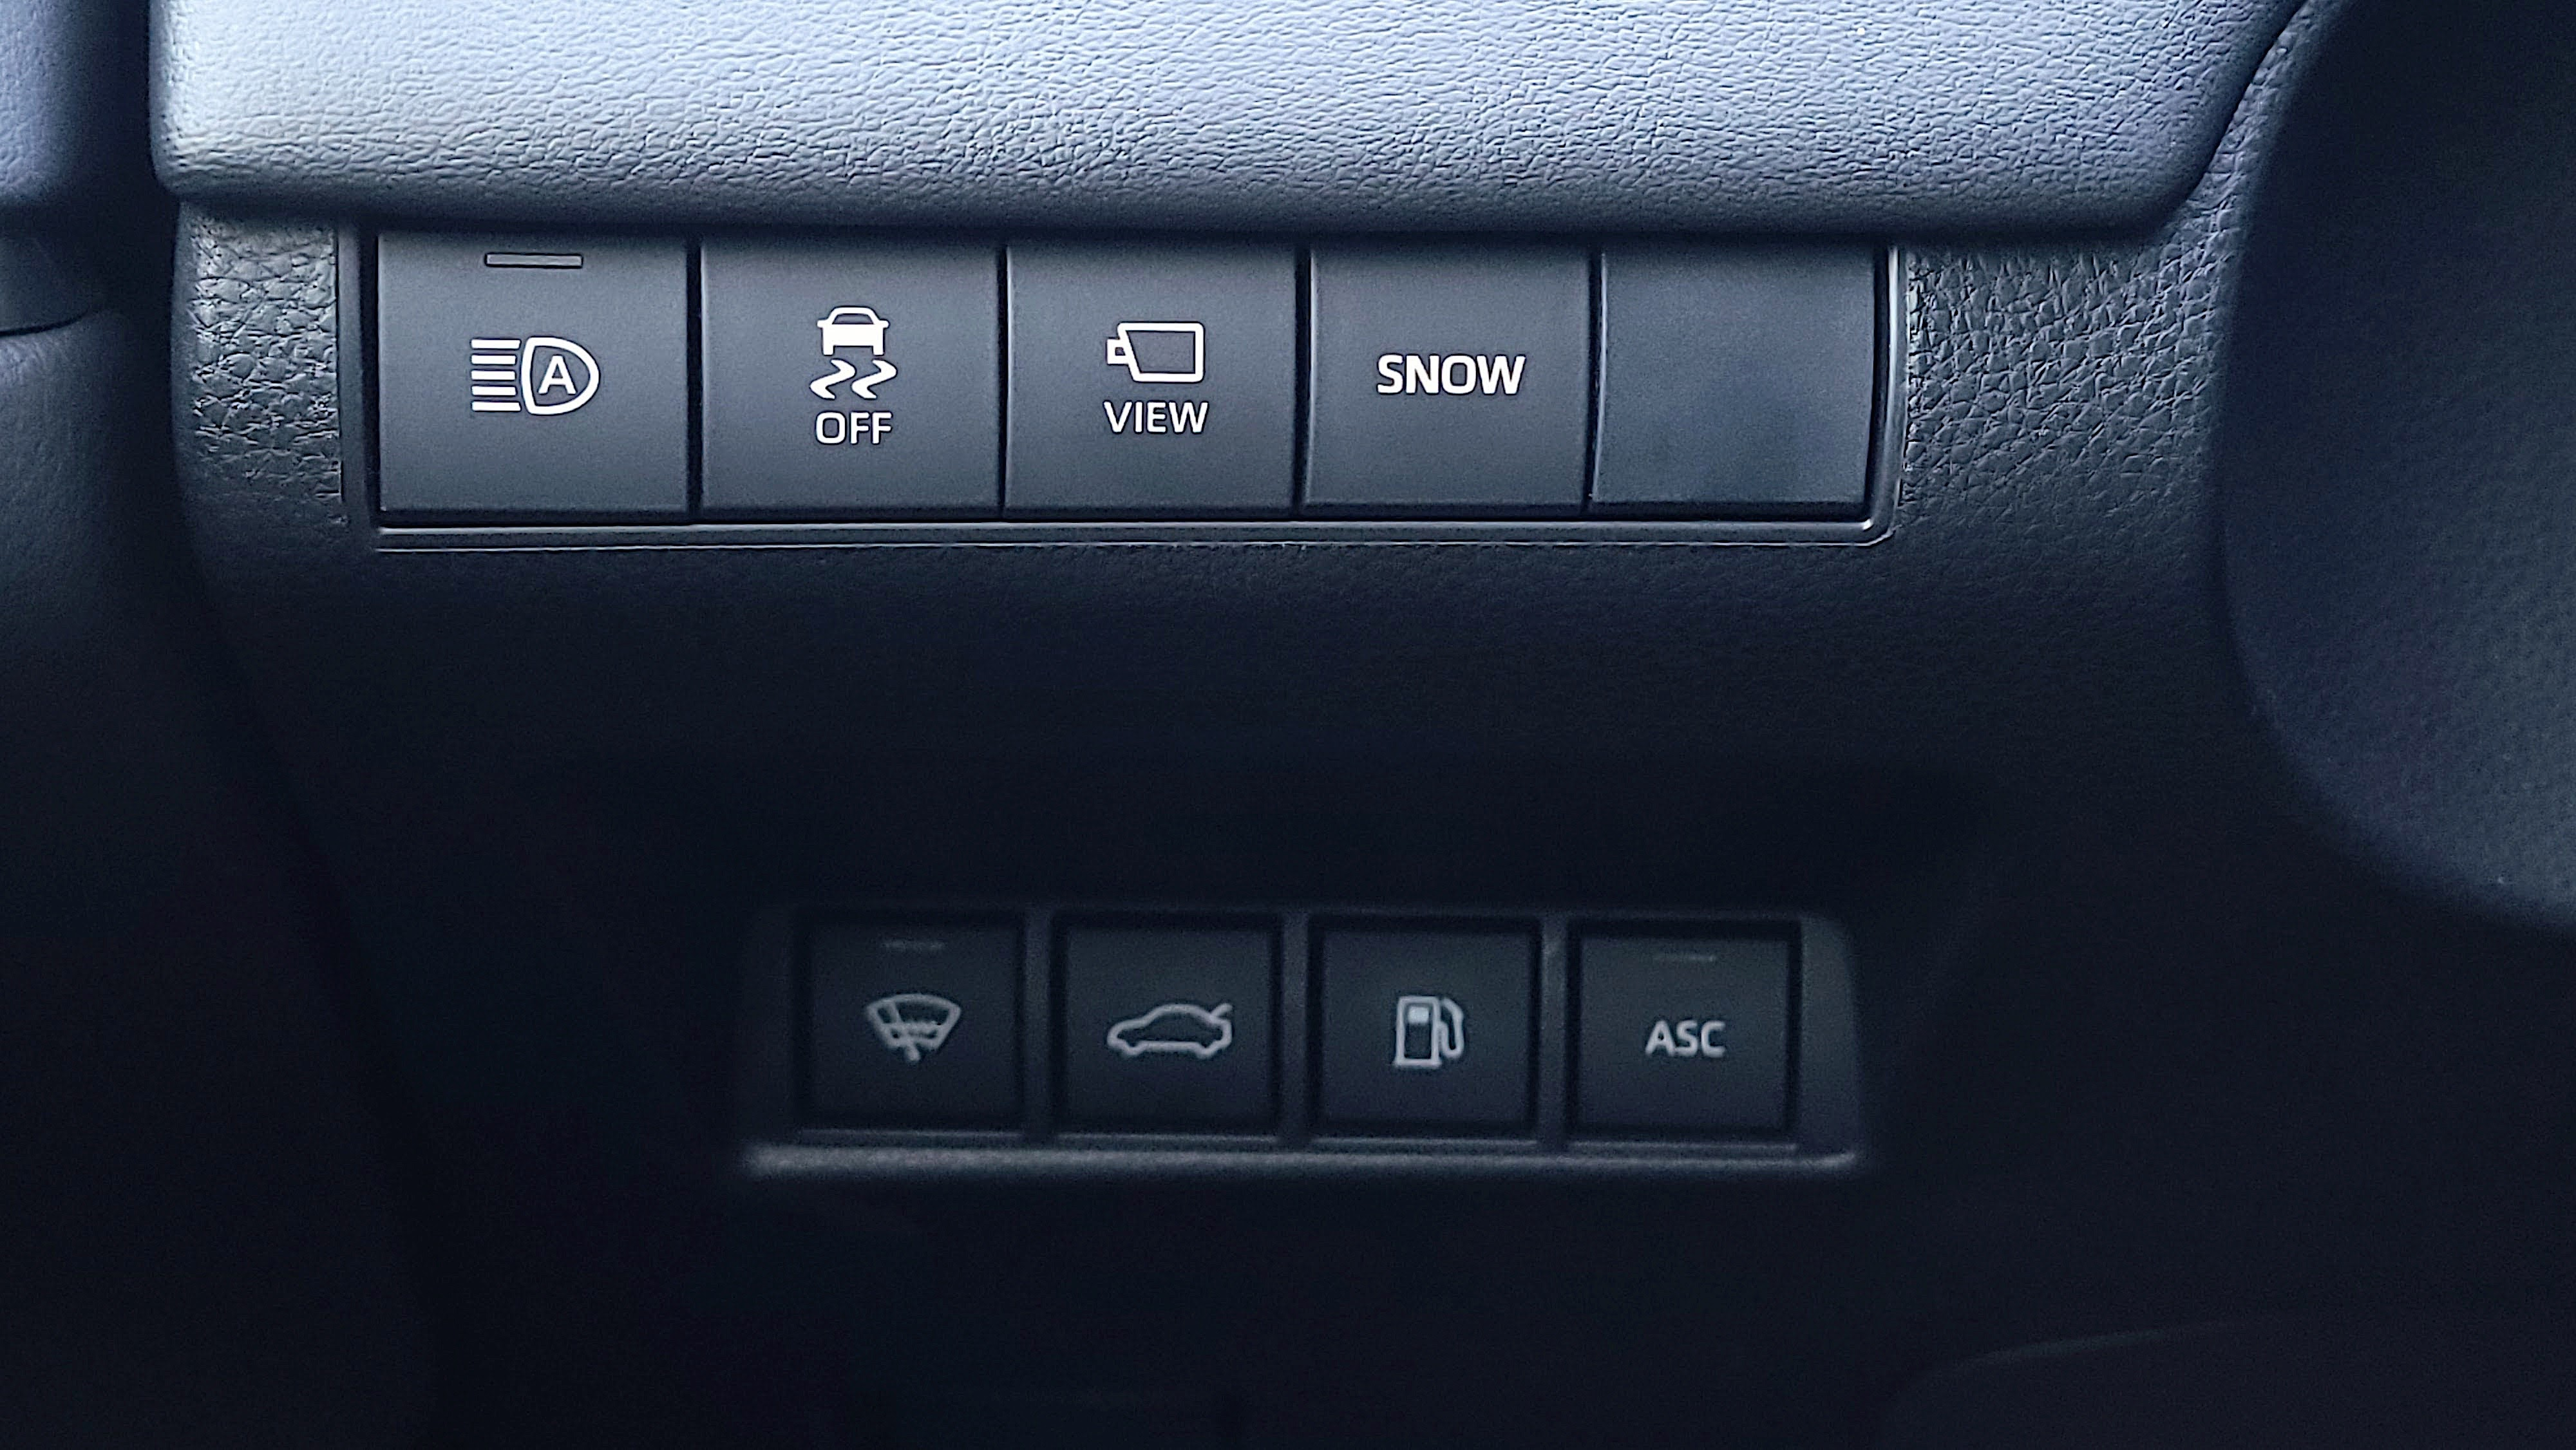 Buttons for Snow mode and more in the Toyota Mirai (2021)